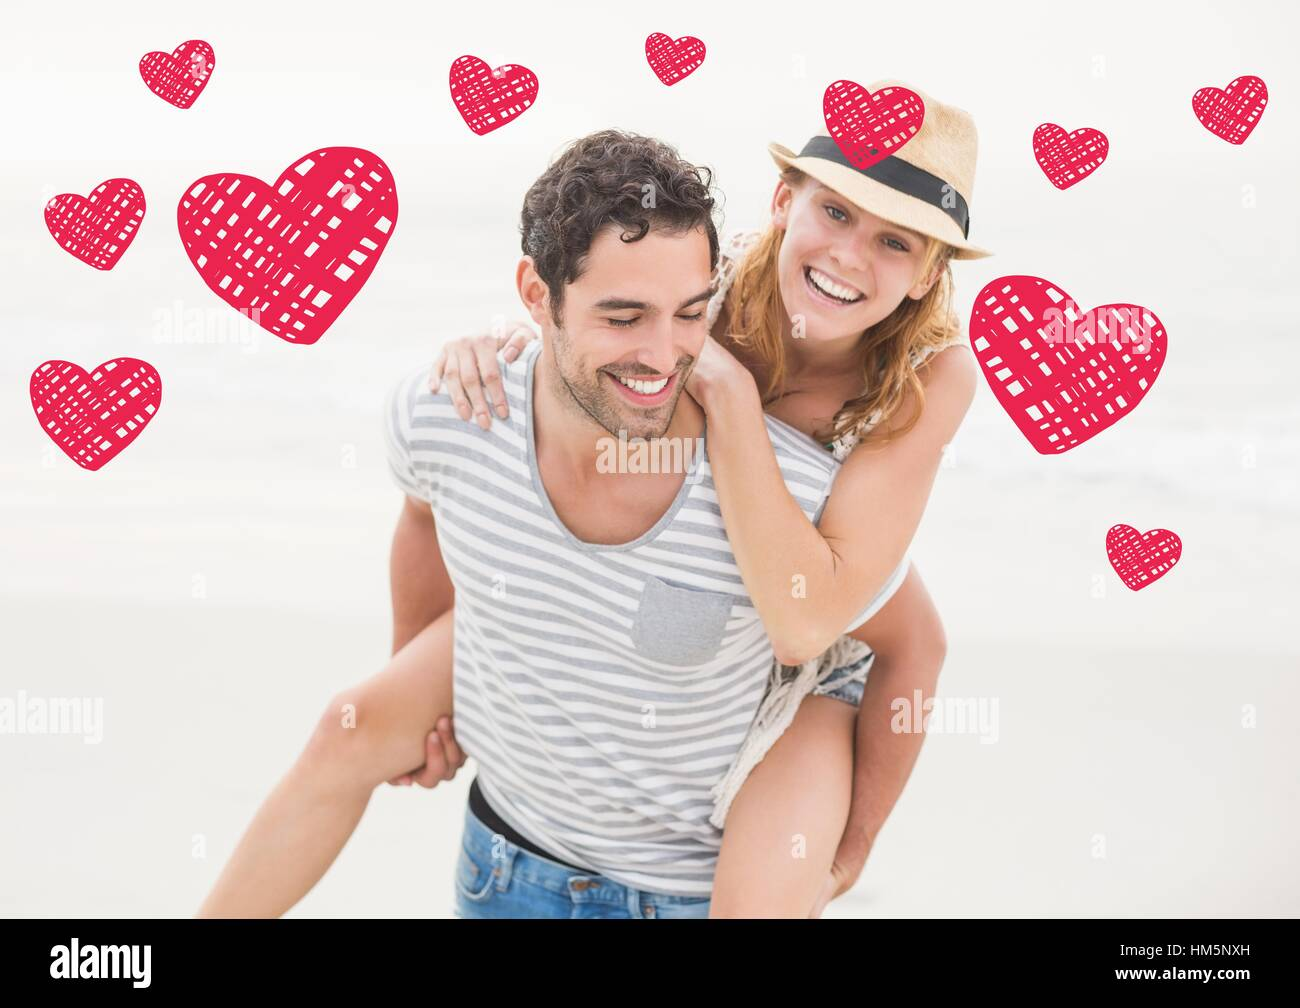 Happy man giving piggy back to woman against white background - Stock Image